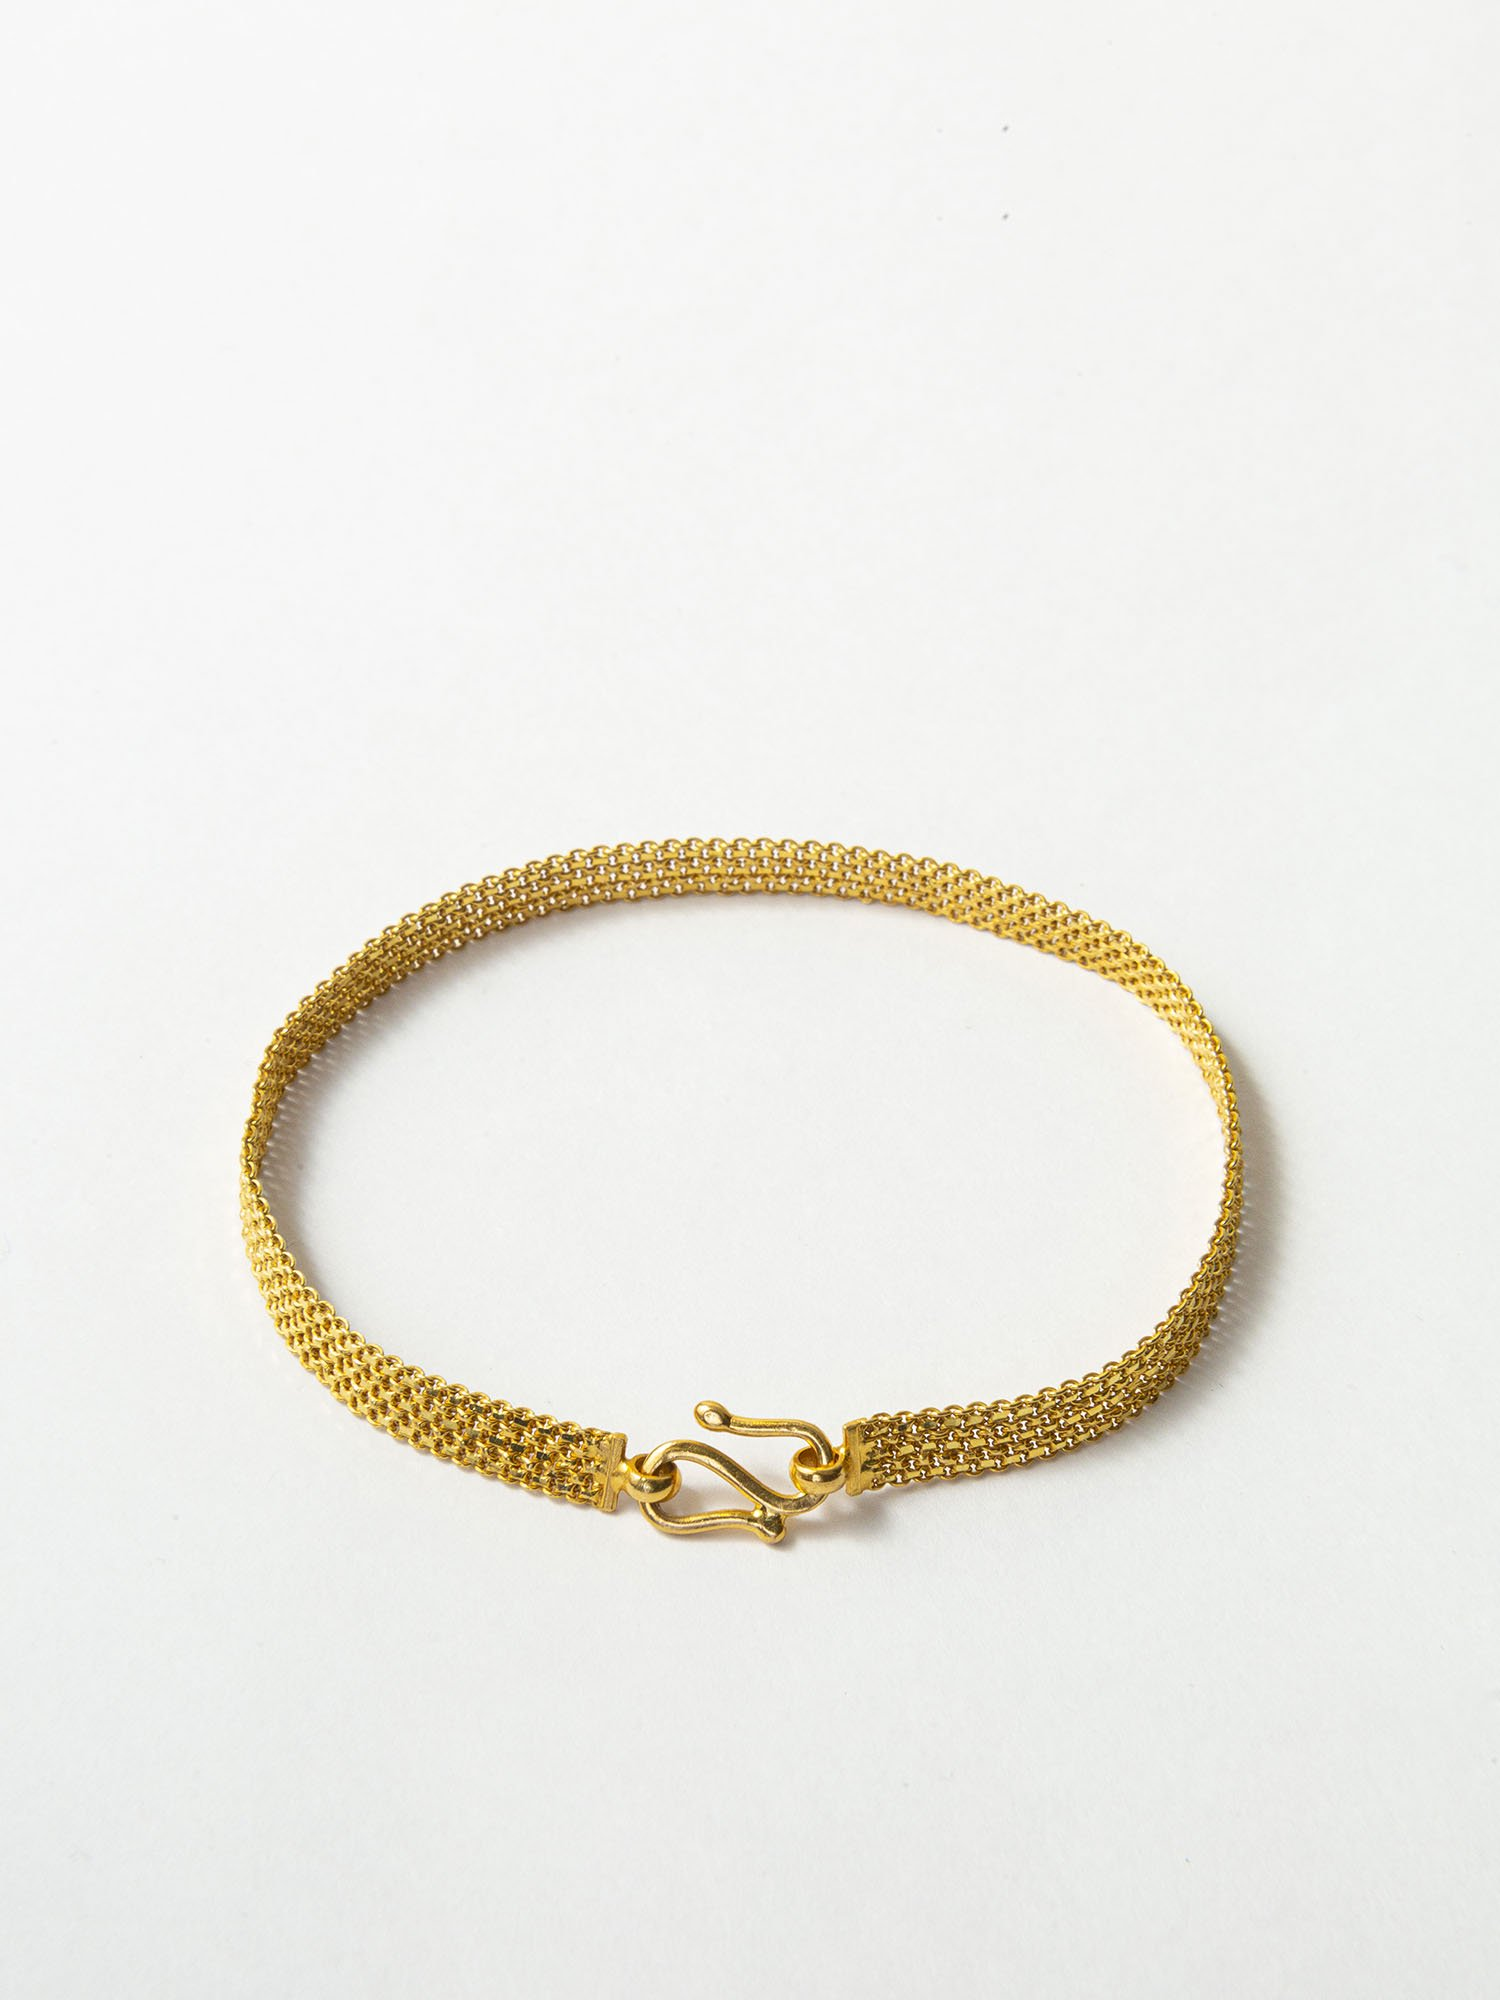 HELIOS / Chain kitting bracelet